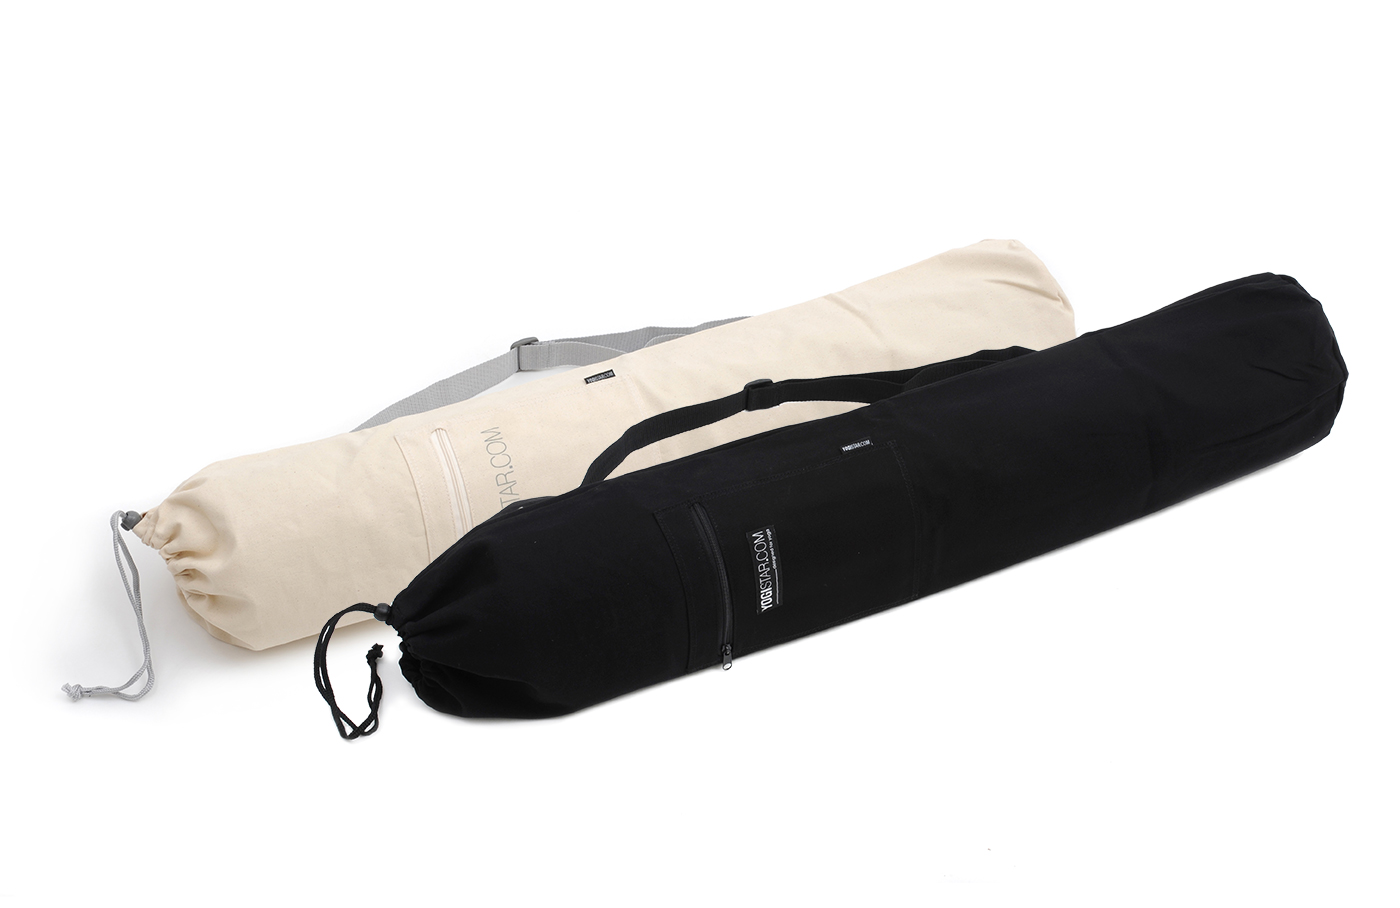 Yoga carrybag basic - XXL - cotton - 100 cm